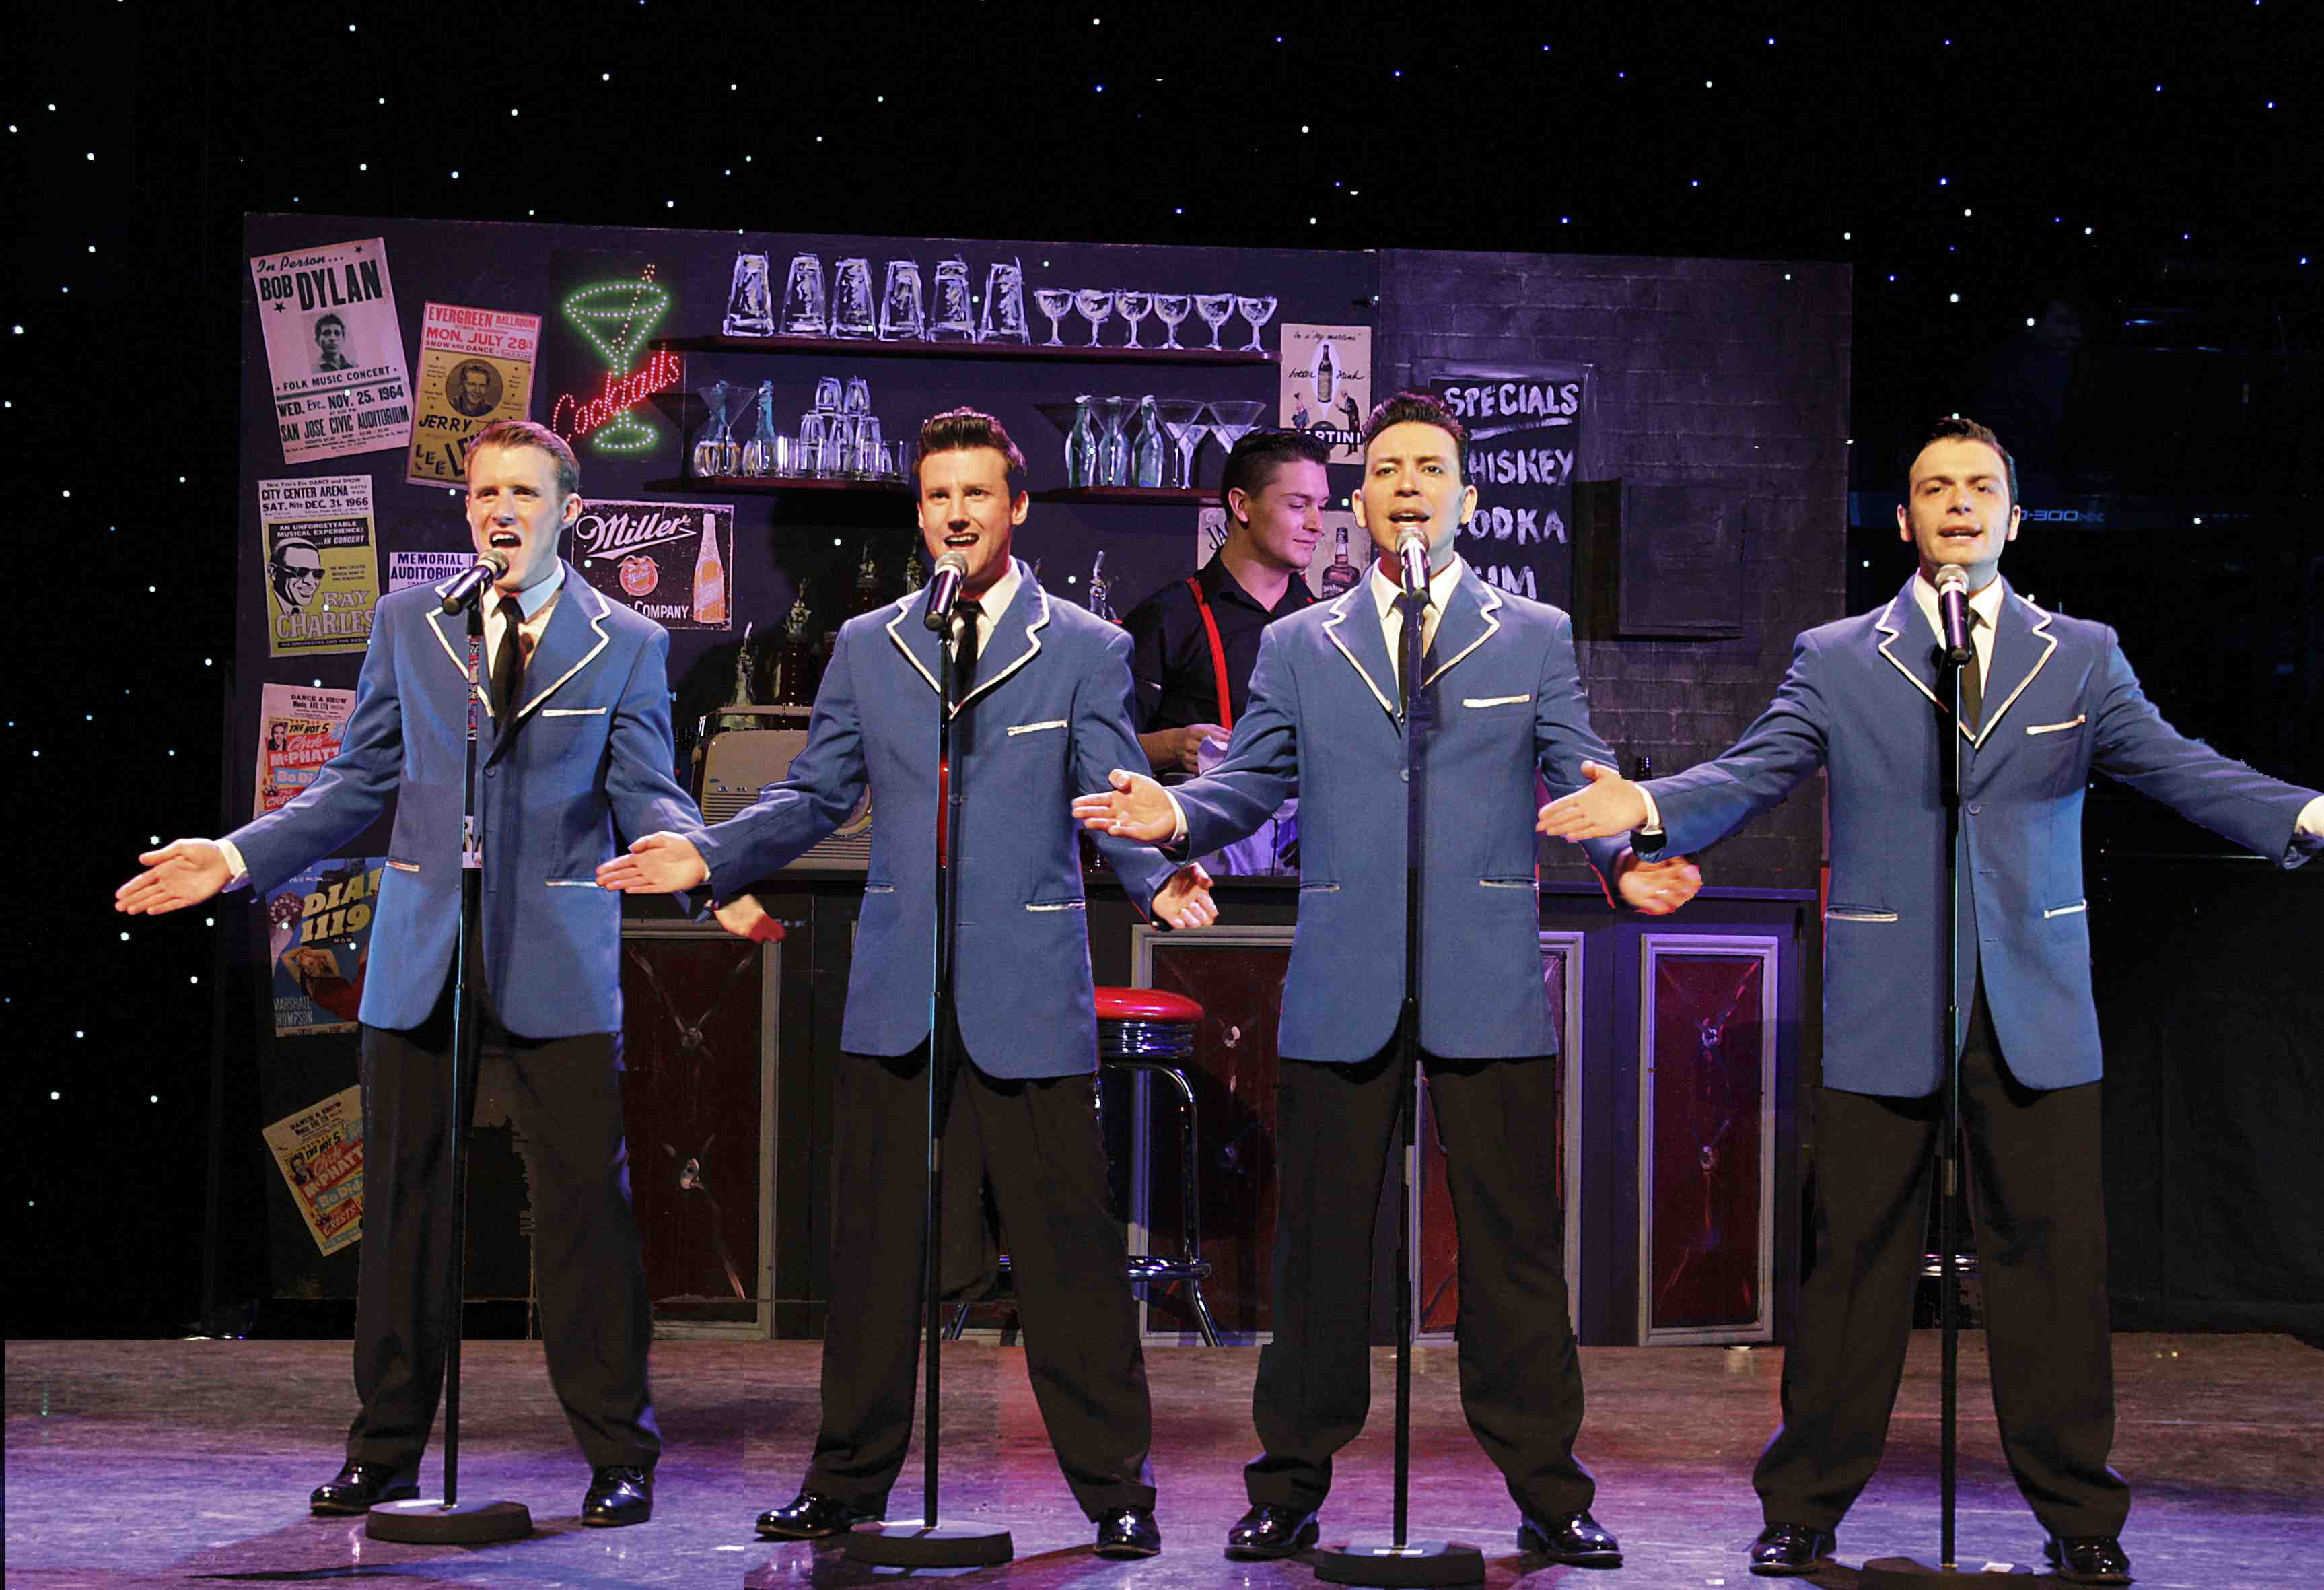 New Jersey Boys & Set high res [1]